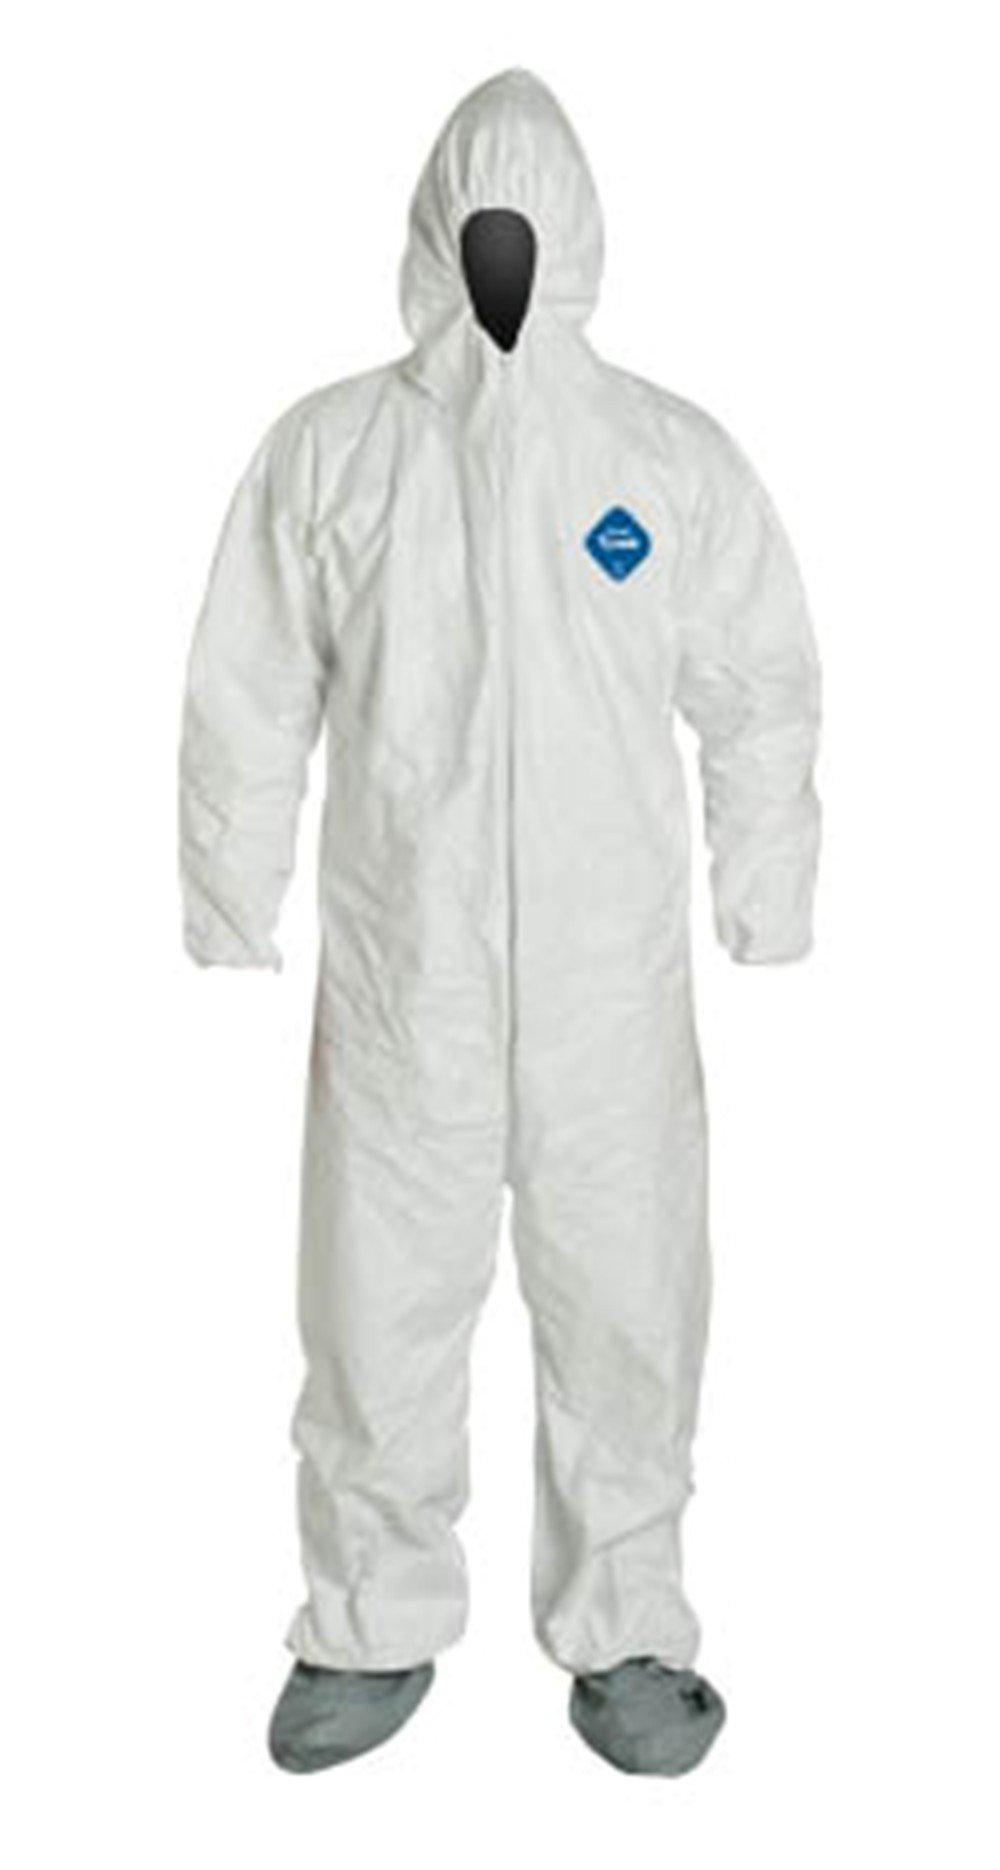 XL Tyvek Coverall W/ Hood, Zipper, Elastic Wrist & Ankle, With Attached Booties (XL-10 Suits) TY122S WH - XL